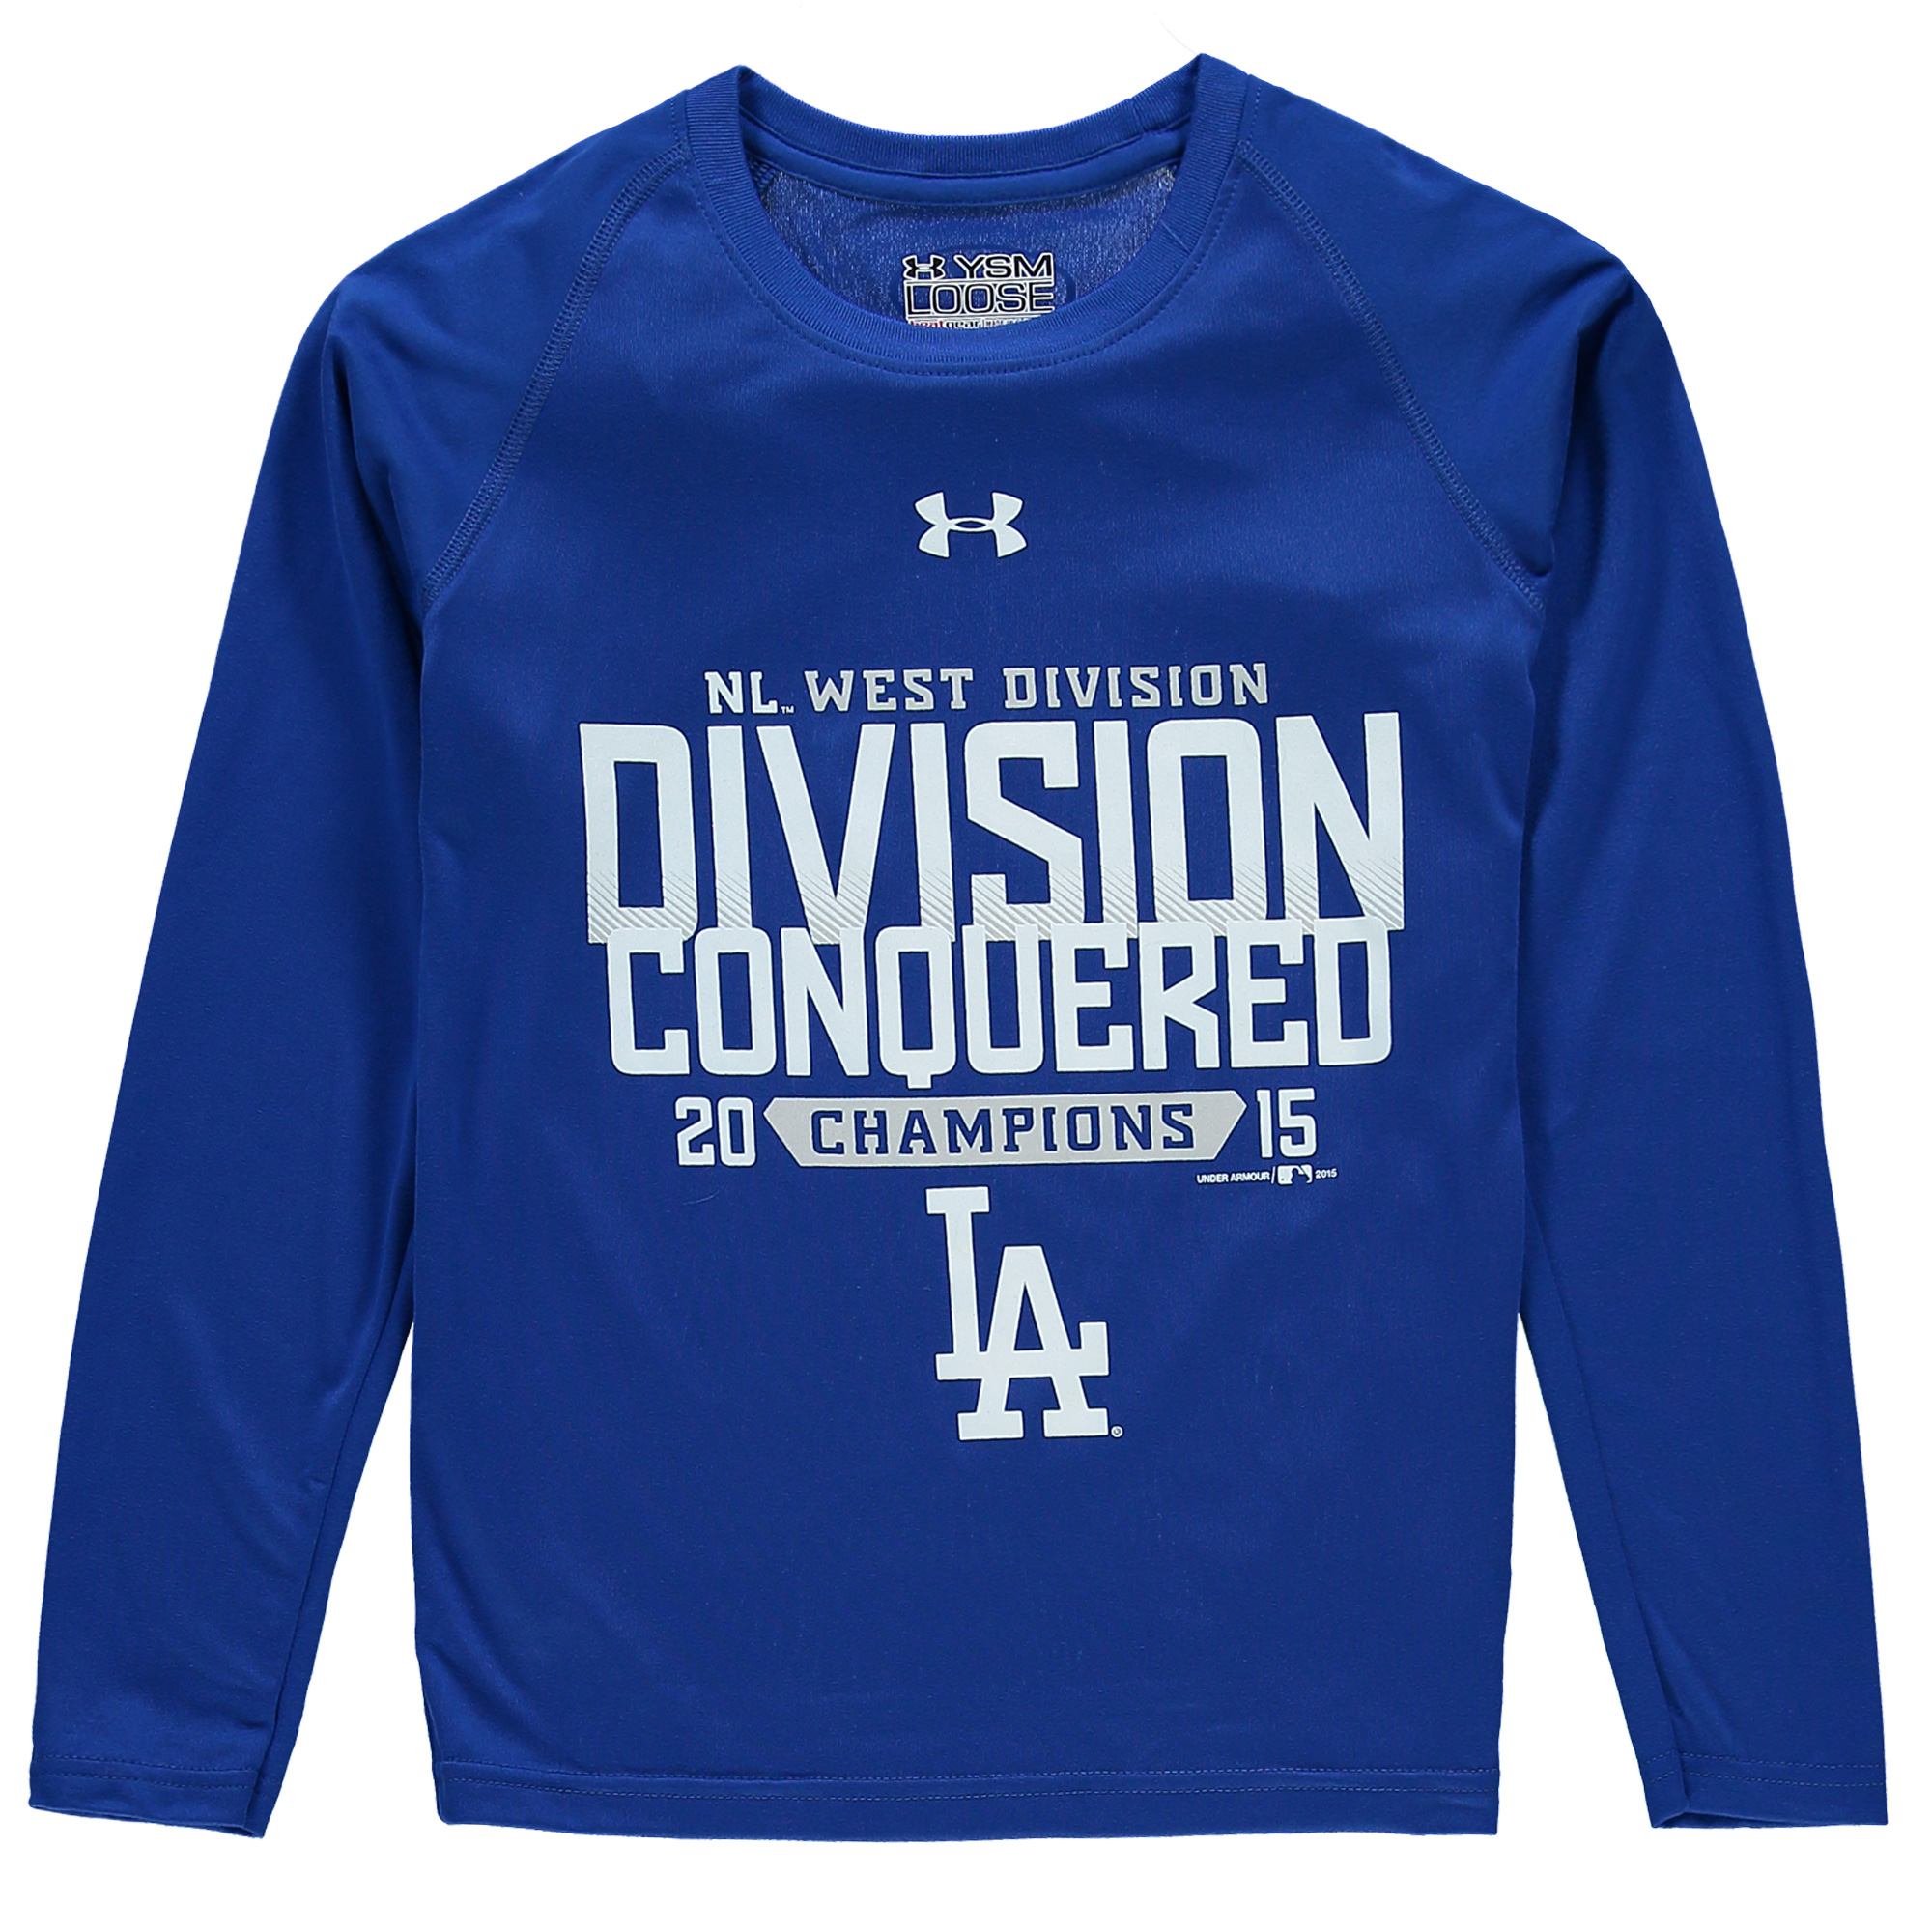 Los Angeles Dodgers Under Armour Youth 2015 NL West Division Conquered Tech Long Sleeve T-Shirt - Royal